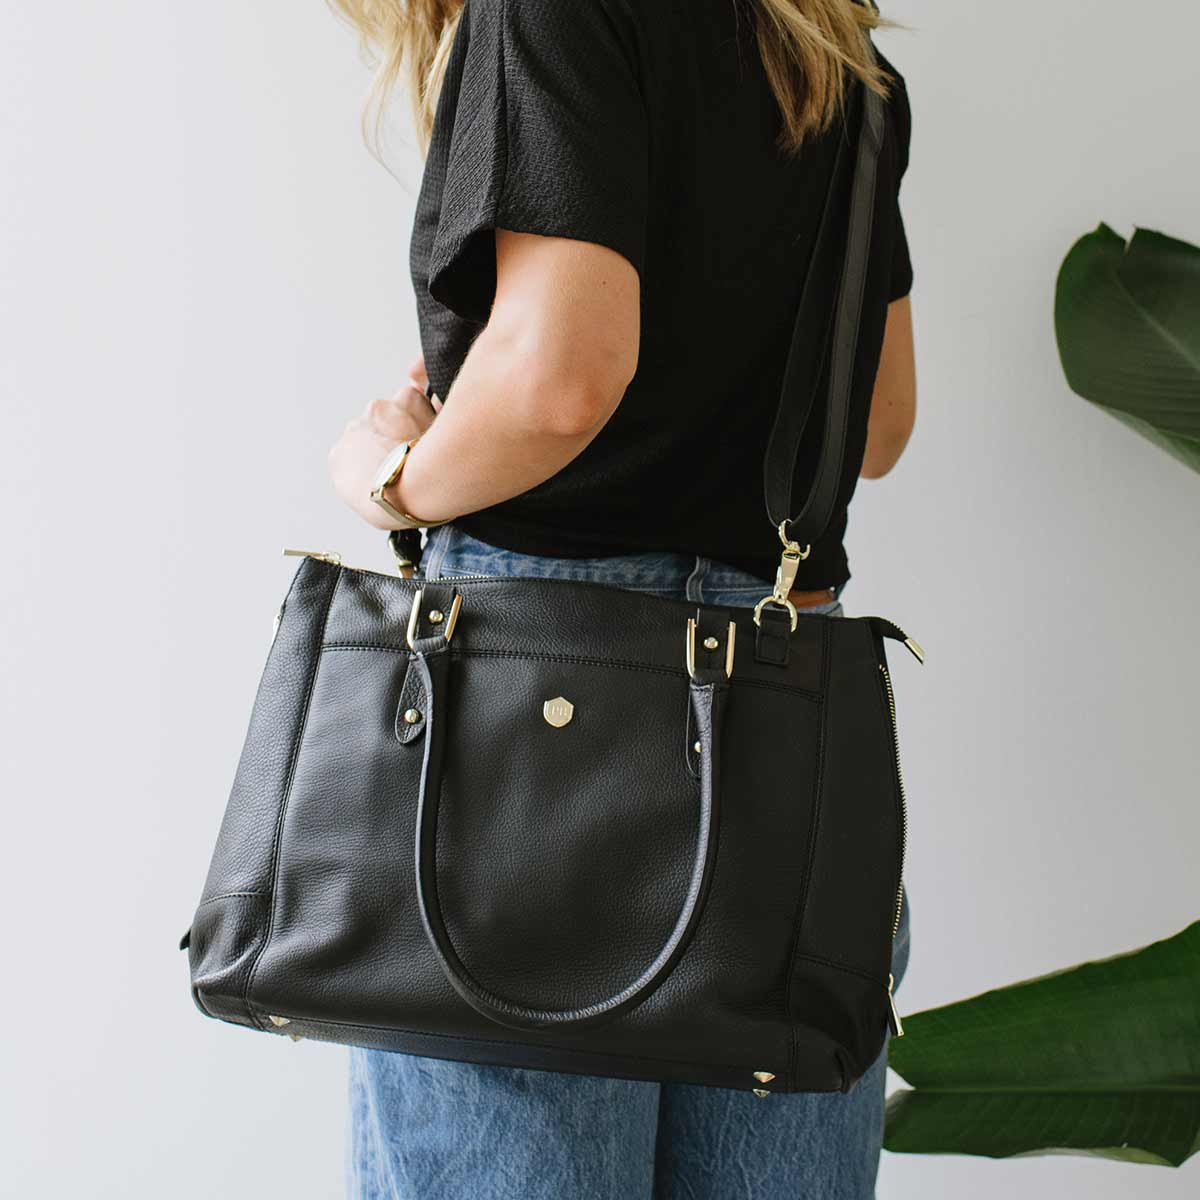 The Perfect Handbag - Poppy Barley